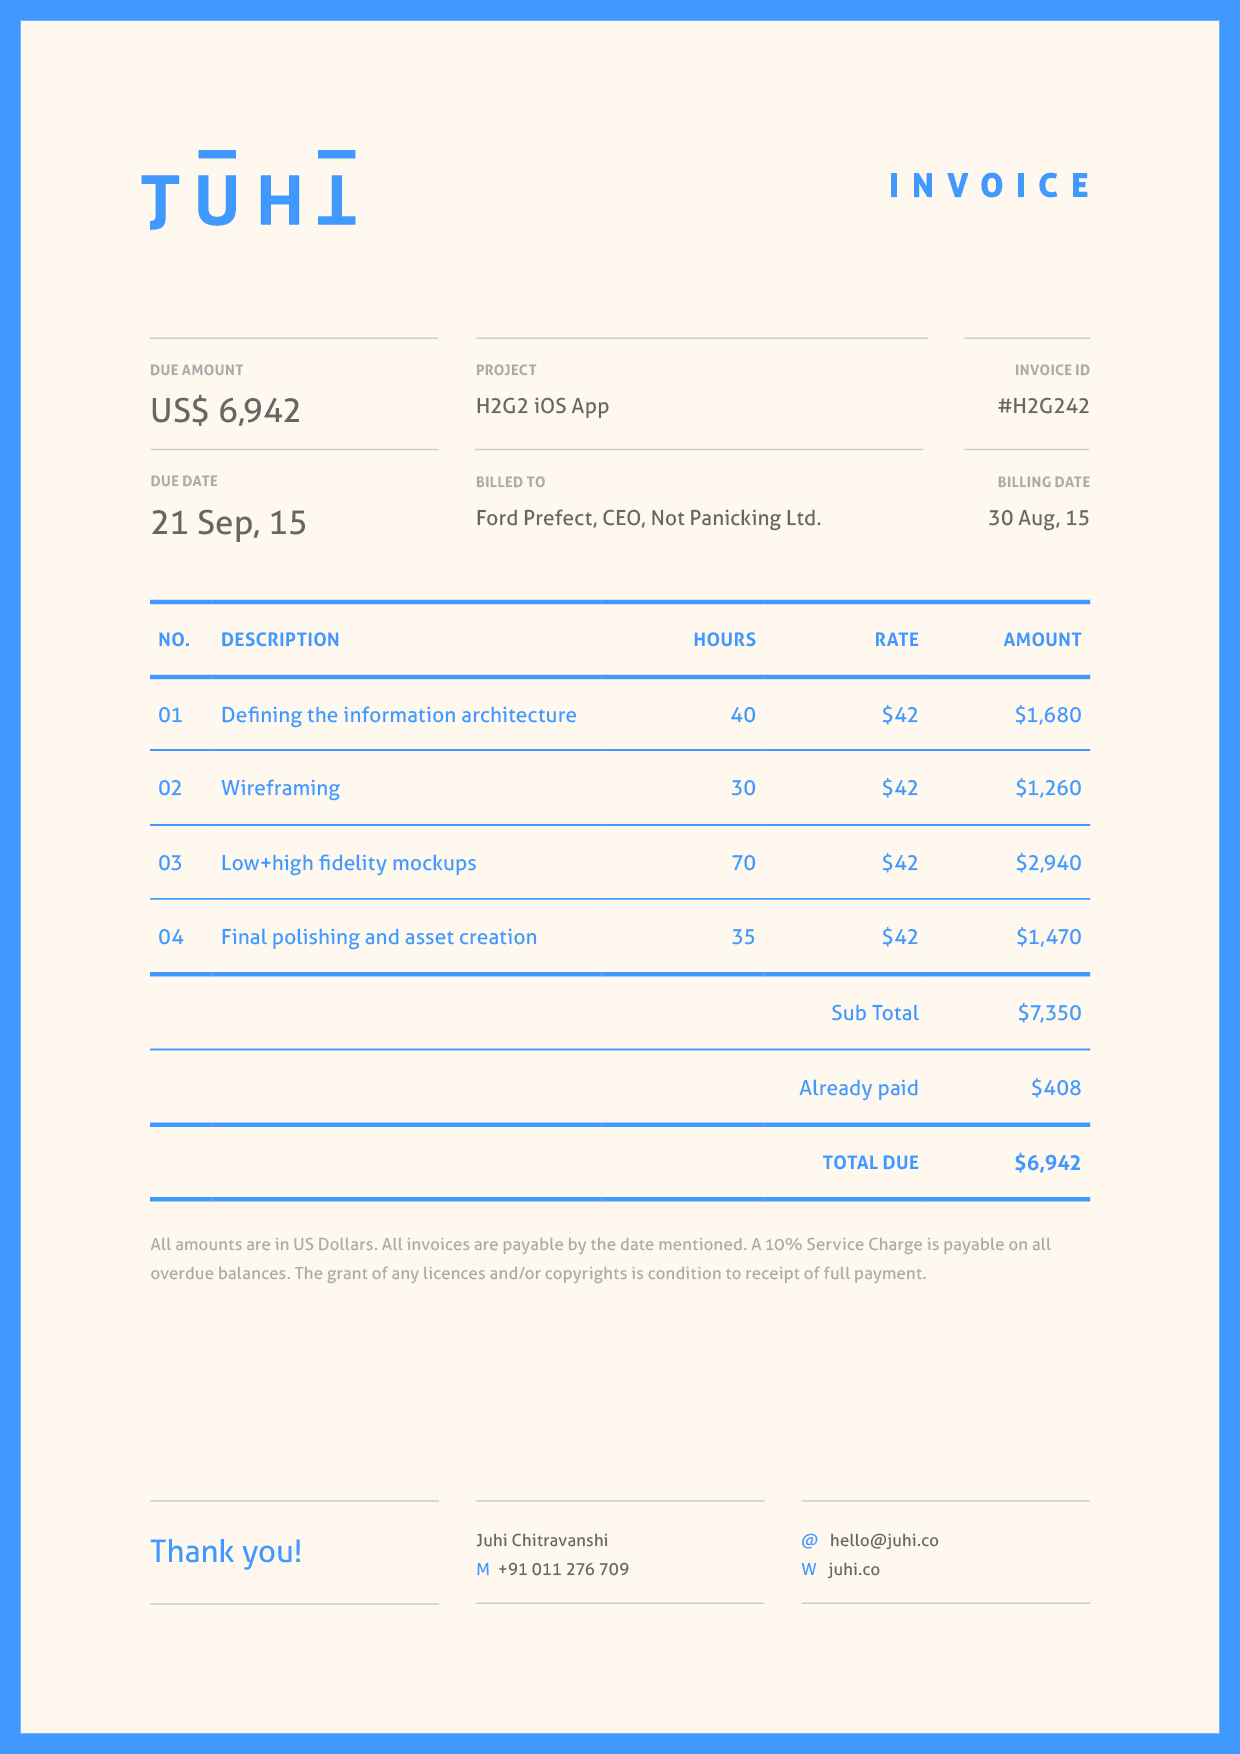 Conservativereviewus  Unique Dont Hold Back On Your Invoice  Inspiring Designs  With Gorgeous Invoice By Juhi Chitravanshi Follow With Breathtaking Sales Receipt Template Word Also Receipt Certificate In Addition Party City Return Policy No Receipt And London Cab Receipt As Well As Tenant Receipt Template Additionally Return At Sephora Without Receipt From Inspirationfeedcom With Conservativereviewus  Gorgeous Dont Hold Back On Your Invoice  Inspiring Designs  With Breathtaking Invoice By Juhi Chitravanshi Follow And Unique Sales Receipt Template Word Also Receipt Certificate In Addition Party City Return Policy No Receipt From Inspirationfeedcom